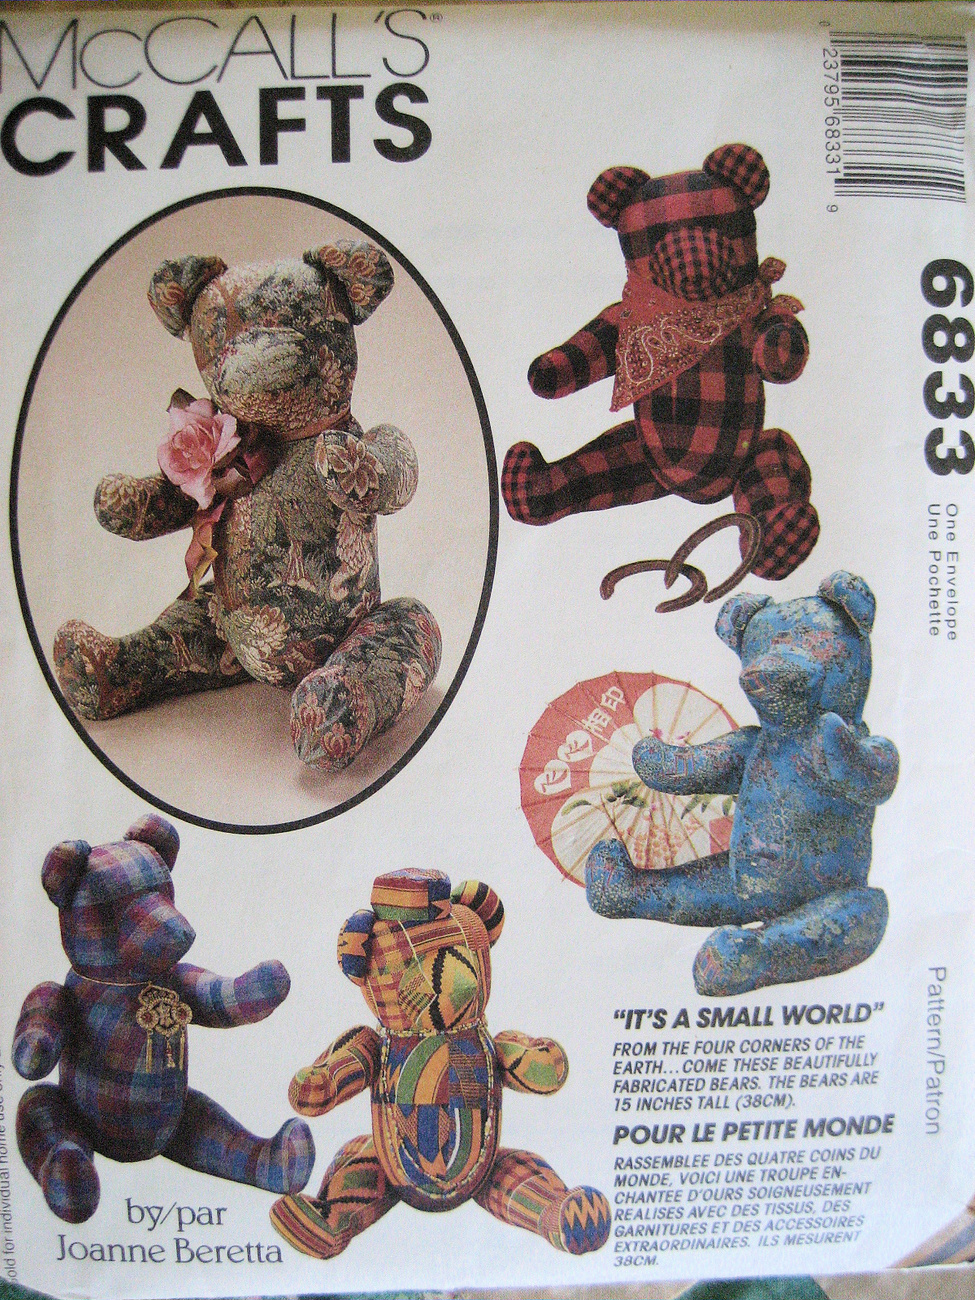 McCalls 6833 Craft Pattern 15 Inch Jointed Bears Joanne Baretta with Scafes